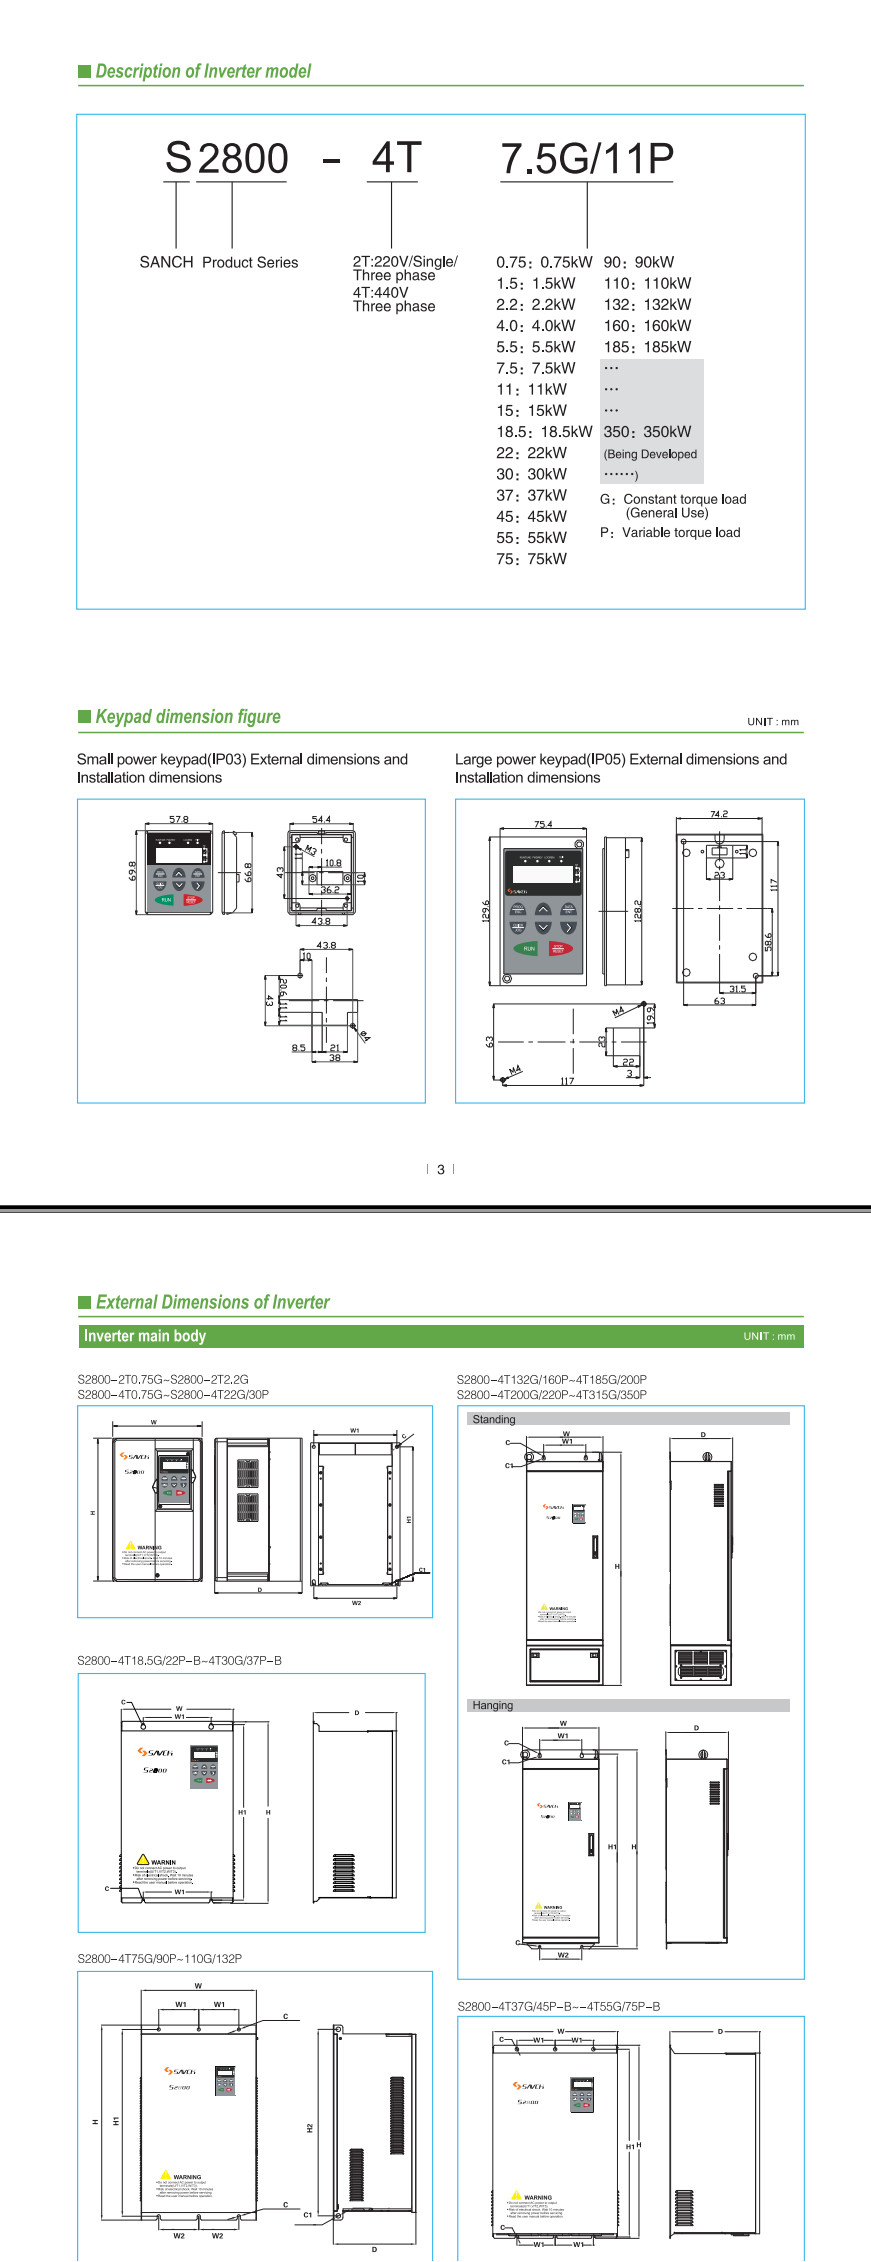 Sanch S2800 0.75kw~315kw sensorless vector control220v 380v ac variable frequency drive for induction motor